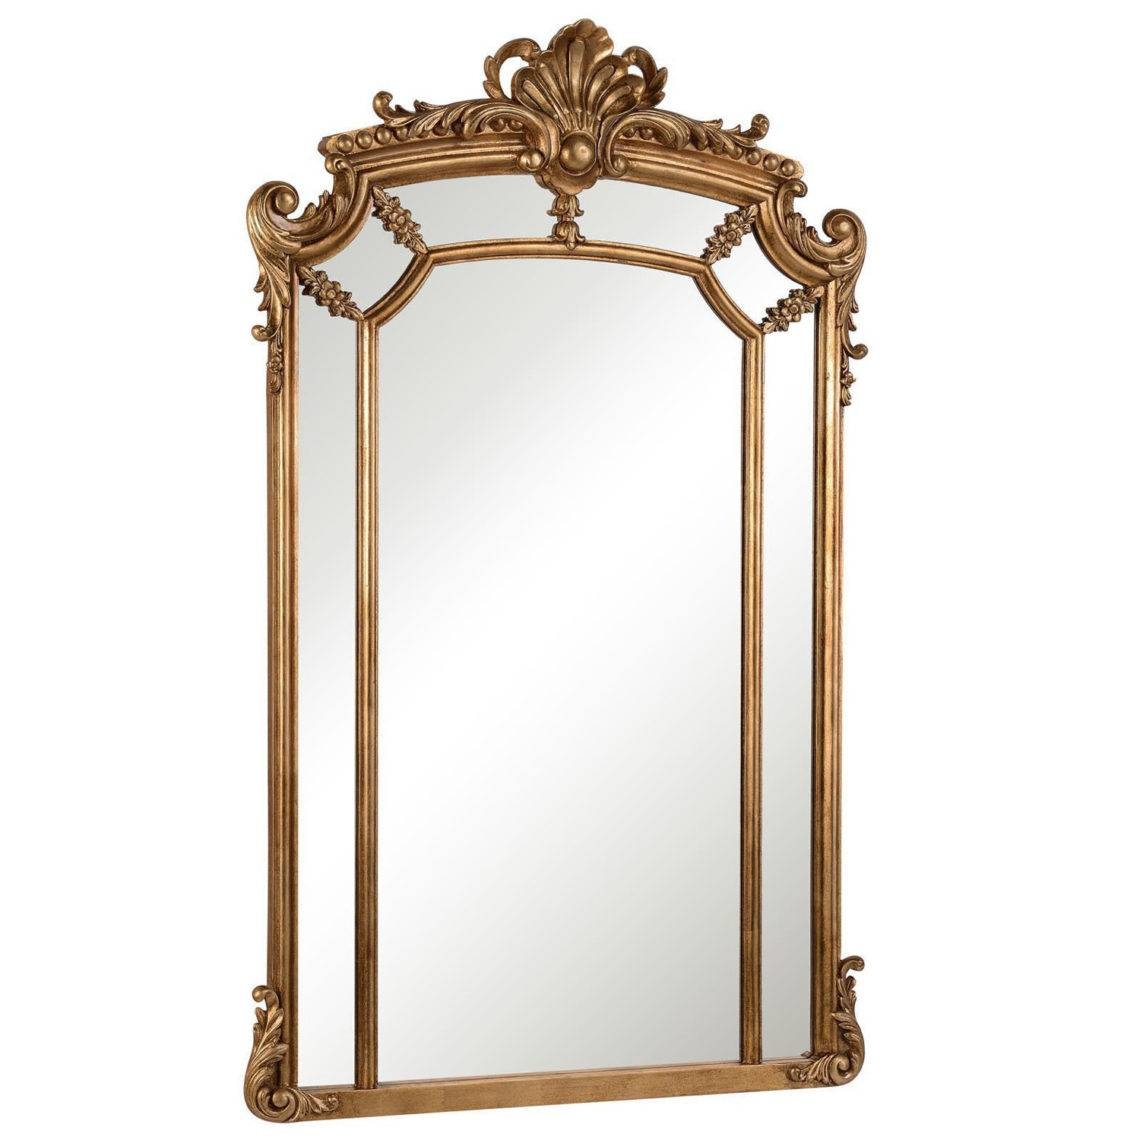 Long Wall Mirrors Furniture Rle Bathroom Exquisite White, Lovable pertaining to Long Gold Mirrors (Image 20 of 25)